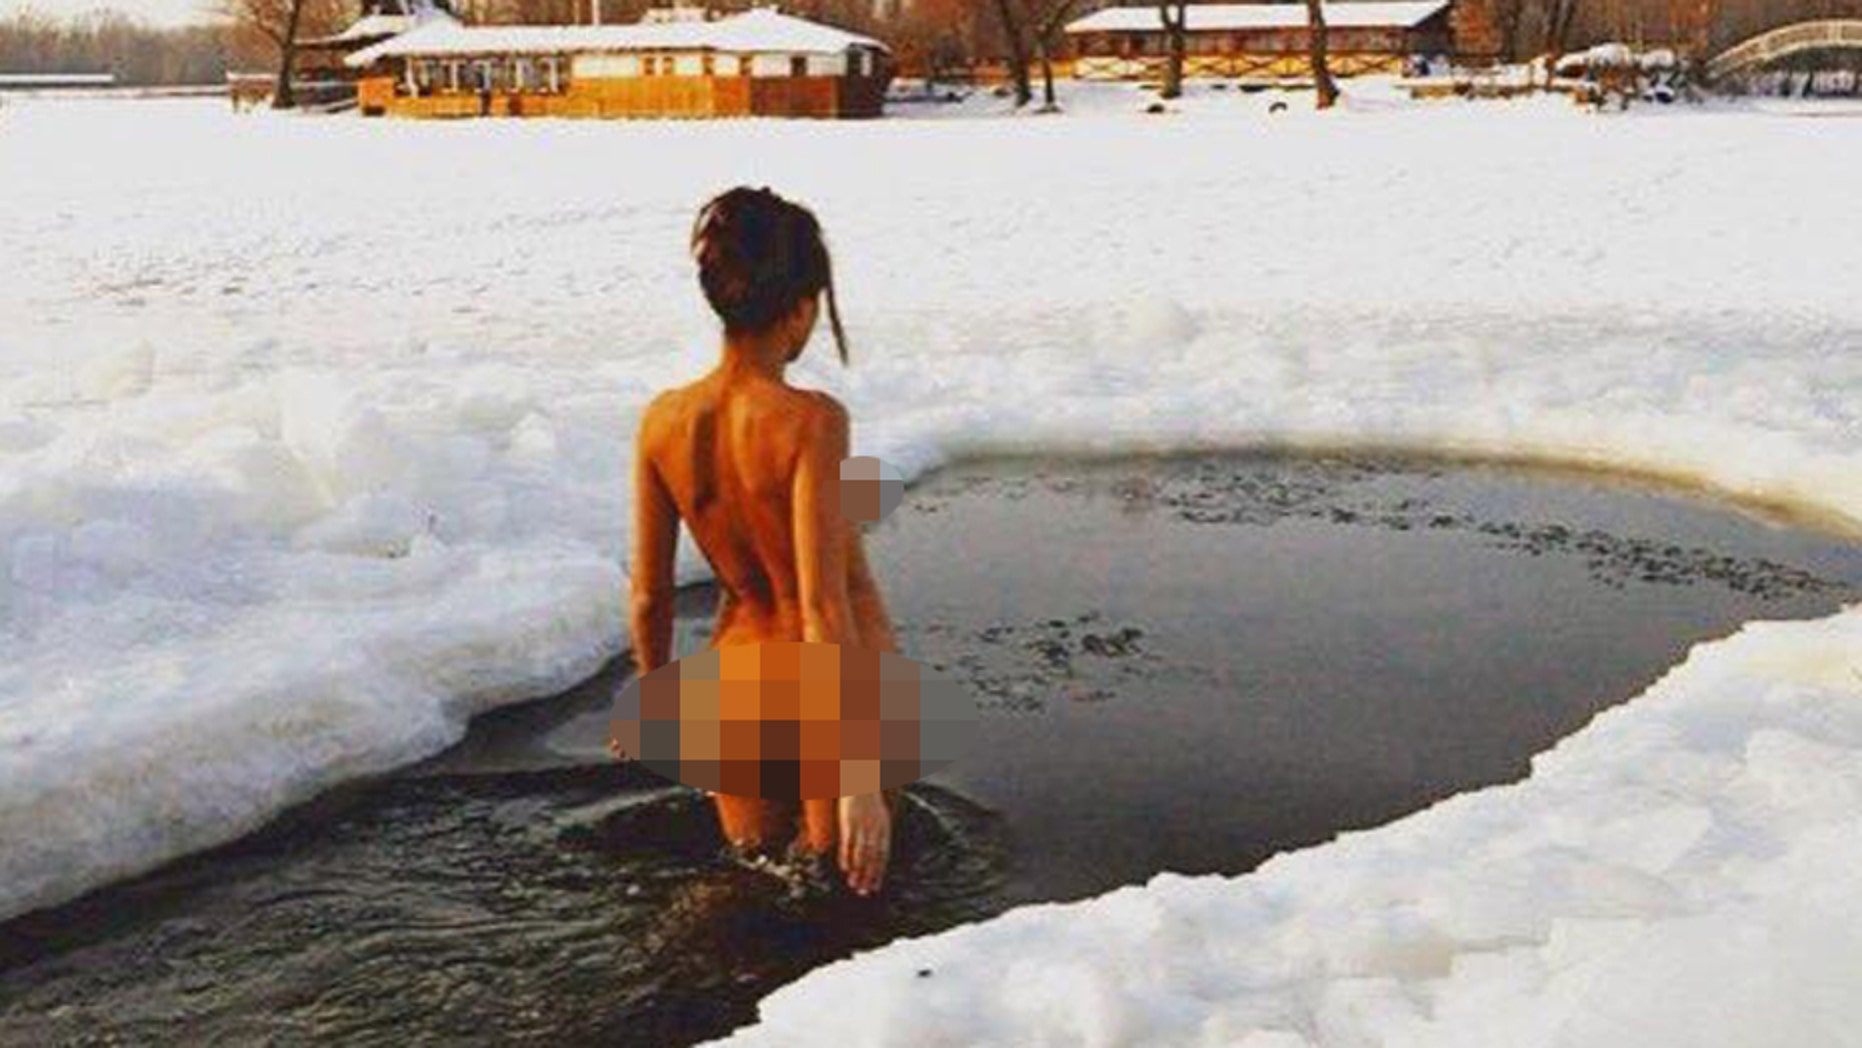 Inna Vladimirskaya, 32, says the trick to looking young is nude jogging and dips in freezing cold water.